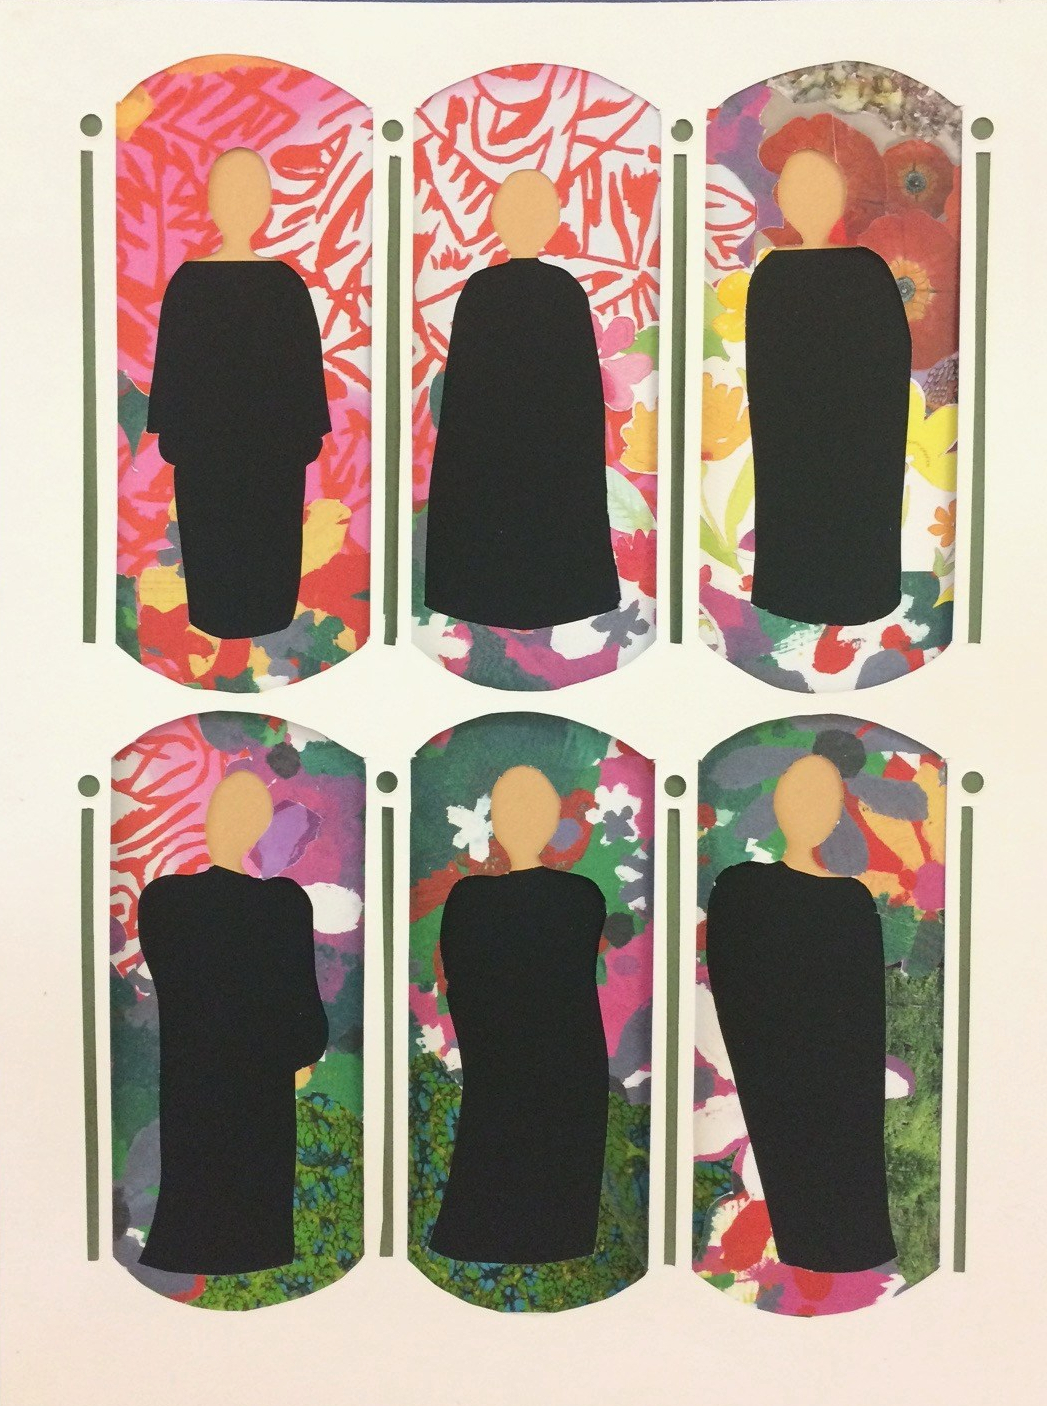 """Nuns in a garden"", cut and layered papers, 11"" x 14.5"""